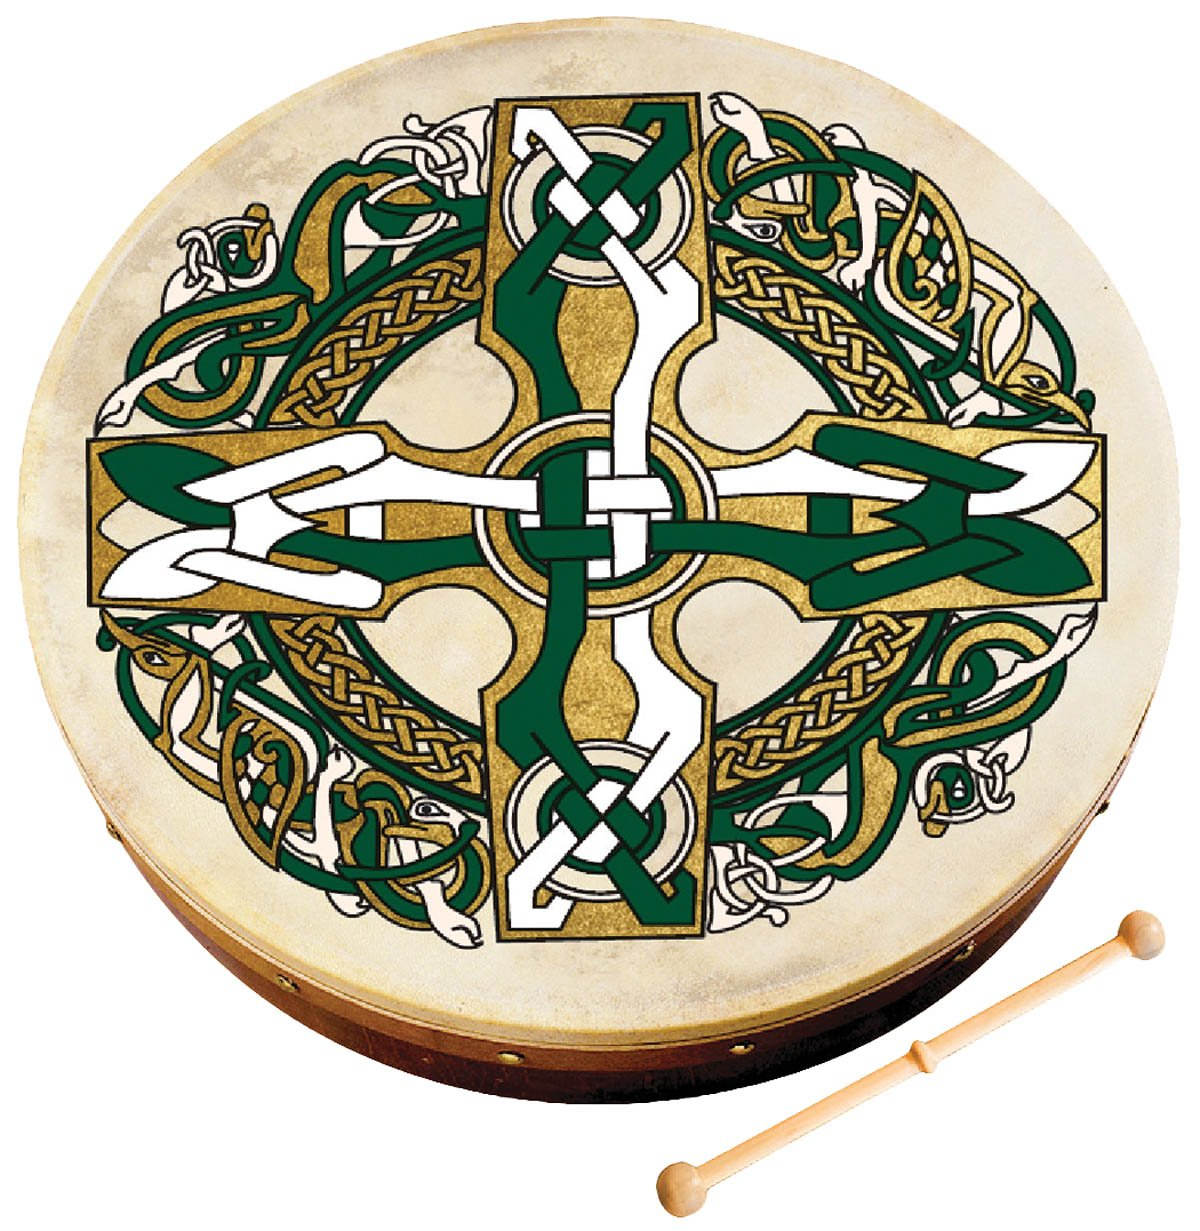 Waltons WM1953 8-Inch Celtic Cross Bodhran by Waltons